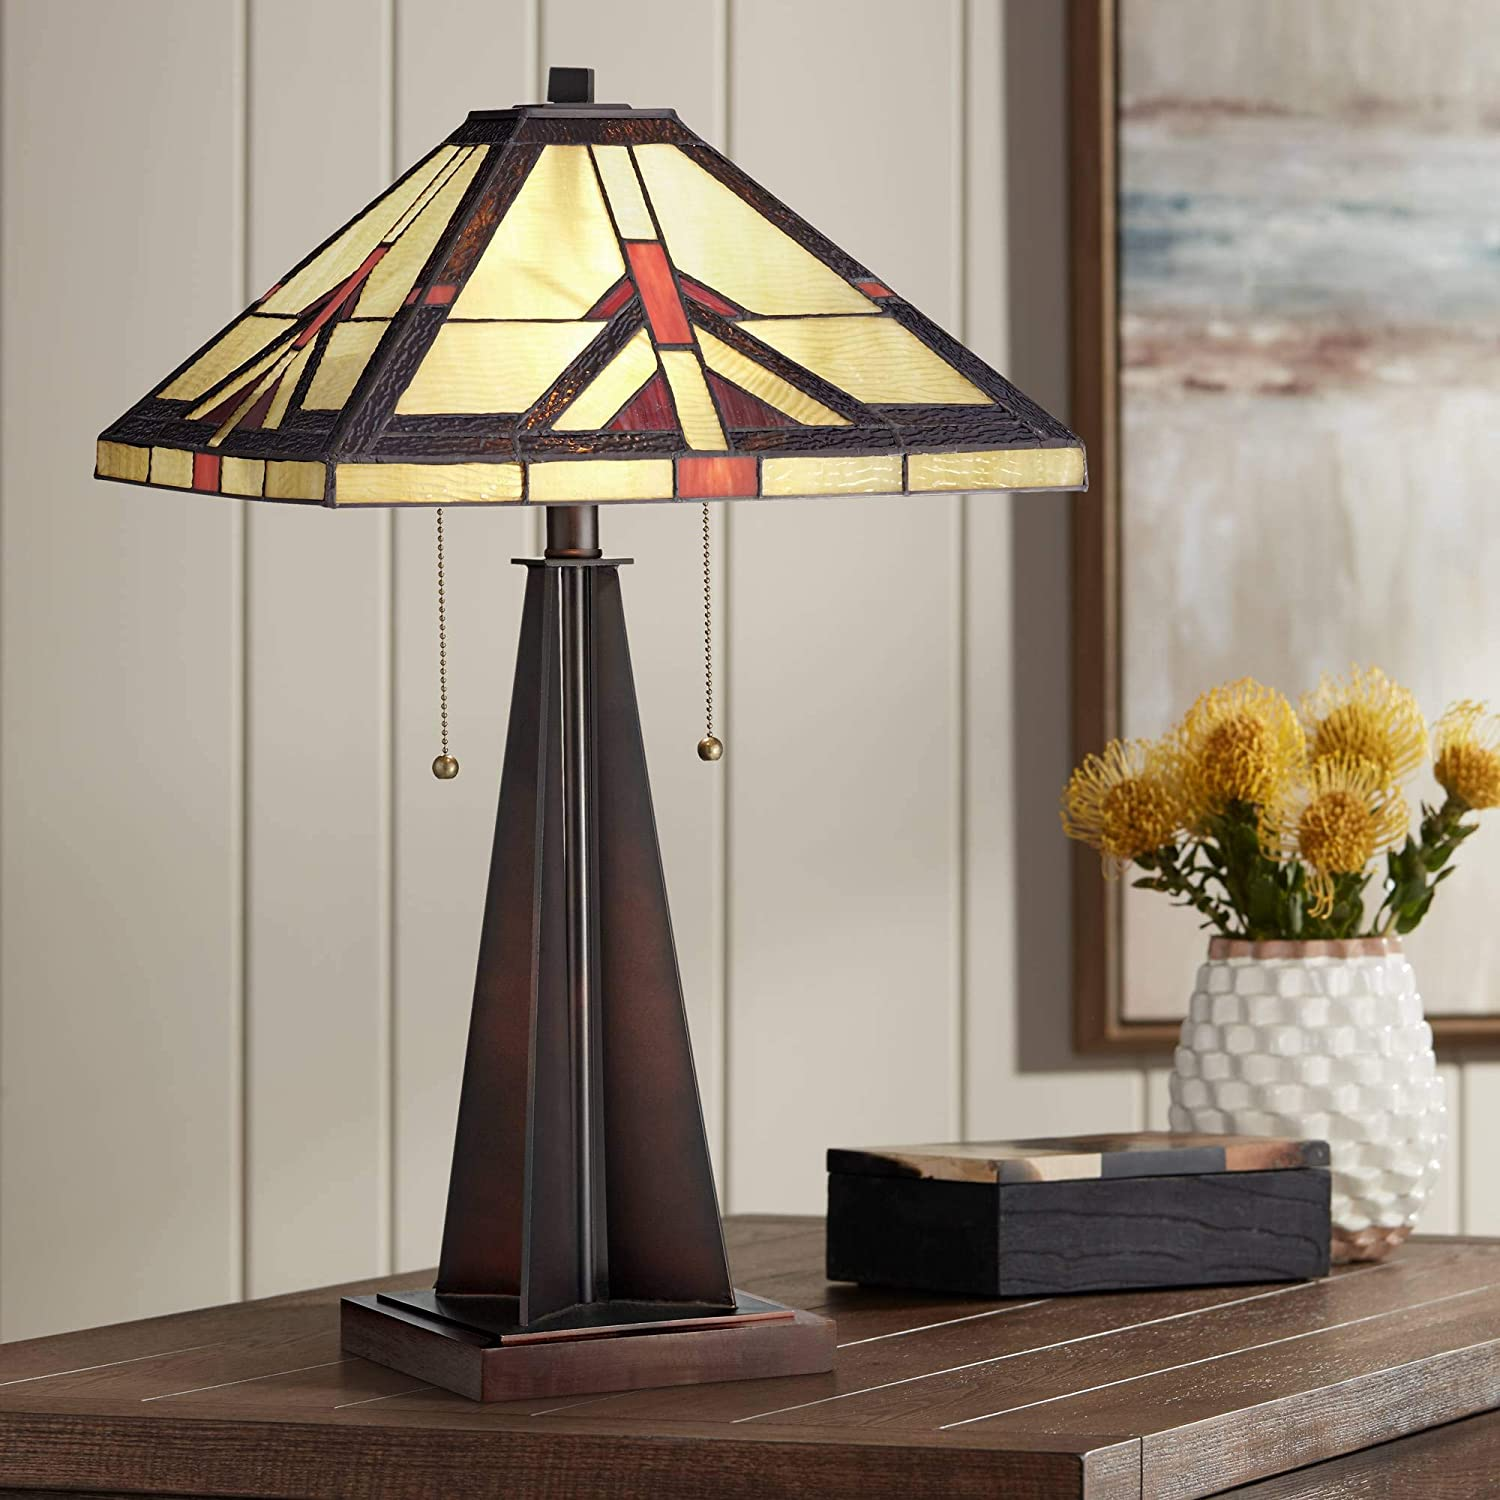 Cascade Rustic Accent Table Lamp Bronze Tiffany Style Stained Art Glass Shade for Living Room Bedroom Bedside Nightstand Office Family - Robert Louis Tiffany